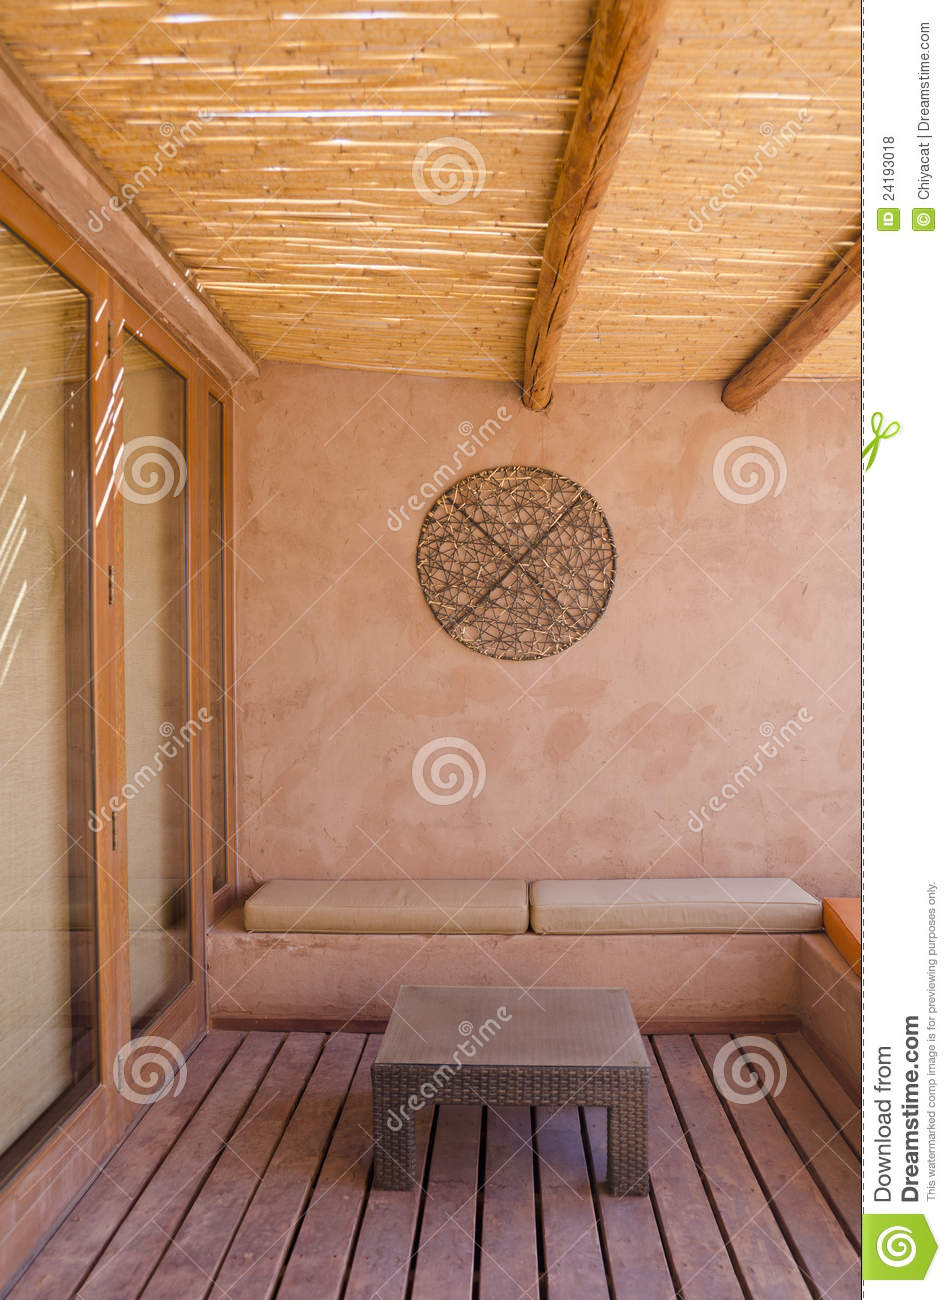 Delicieux Patio With Adobe Wall And Furniture Vertical